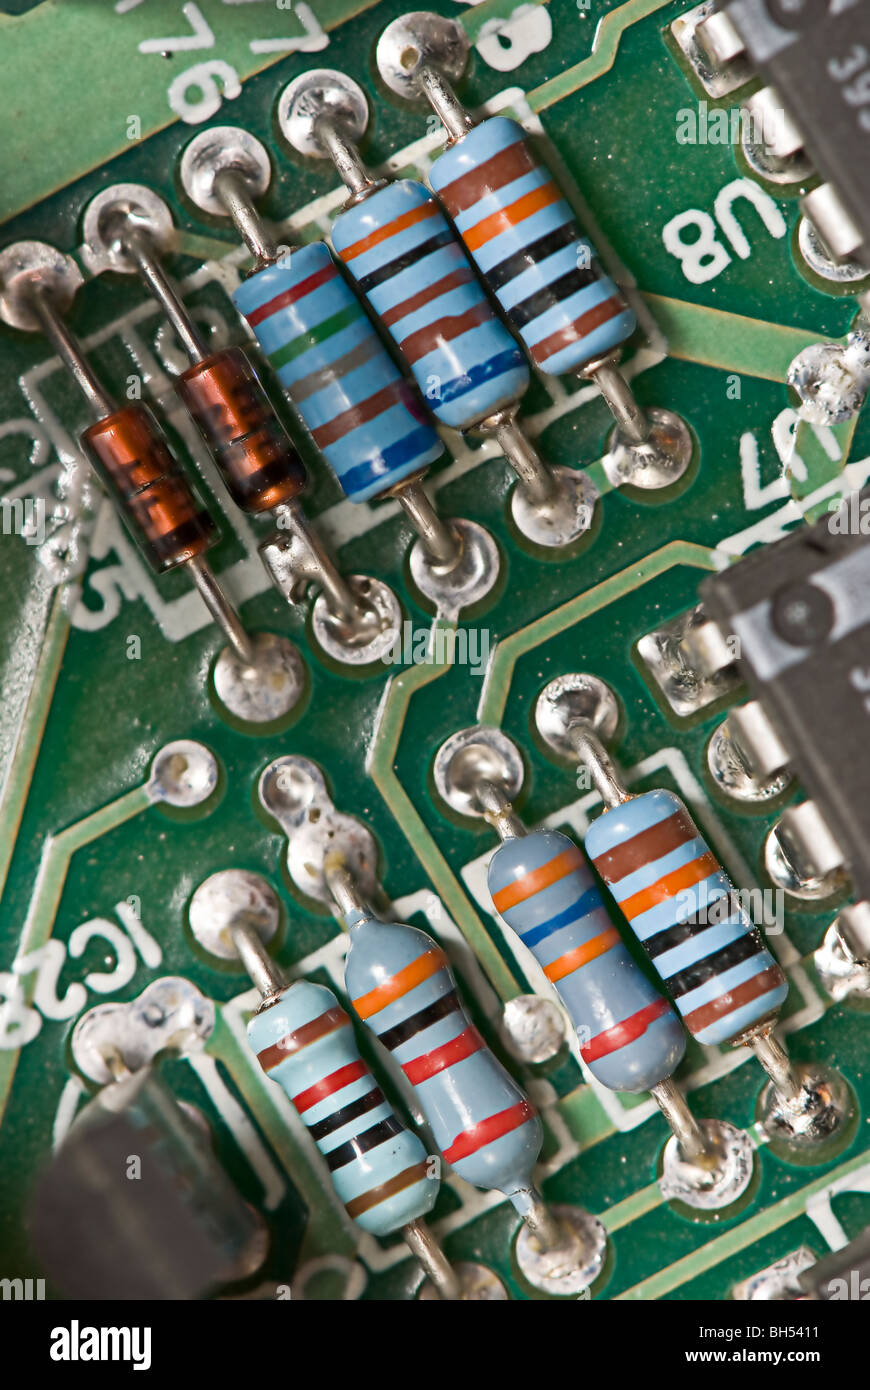 Electronic Components Box Stock Photos Printed Circuit Board Repairs Any General Industrial Electrical On A Image